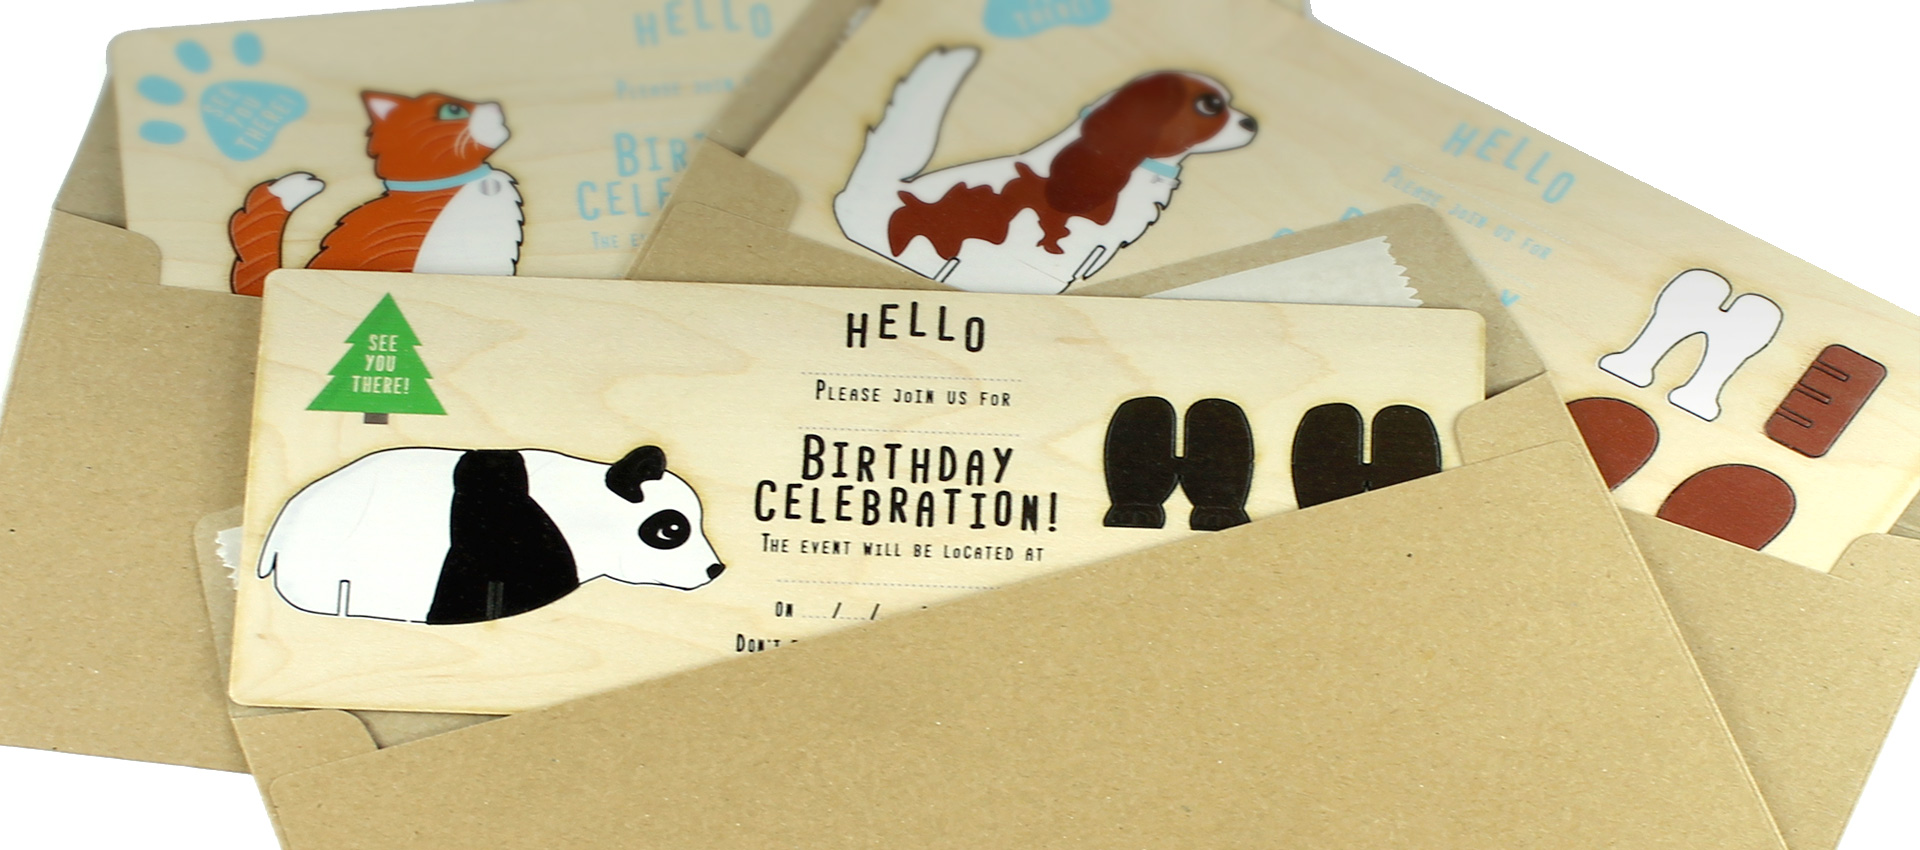 WoodenVites - Party Invitations with a difference